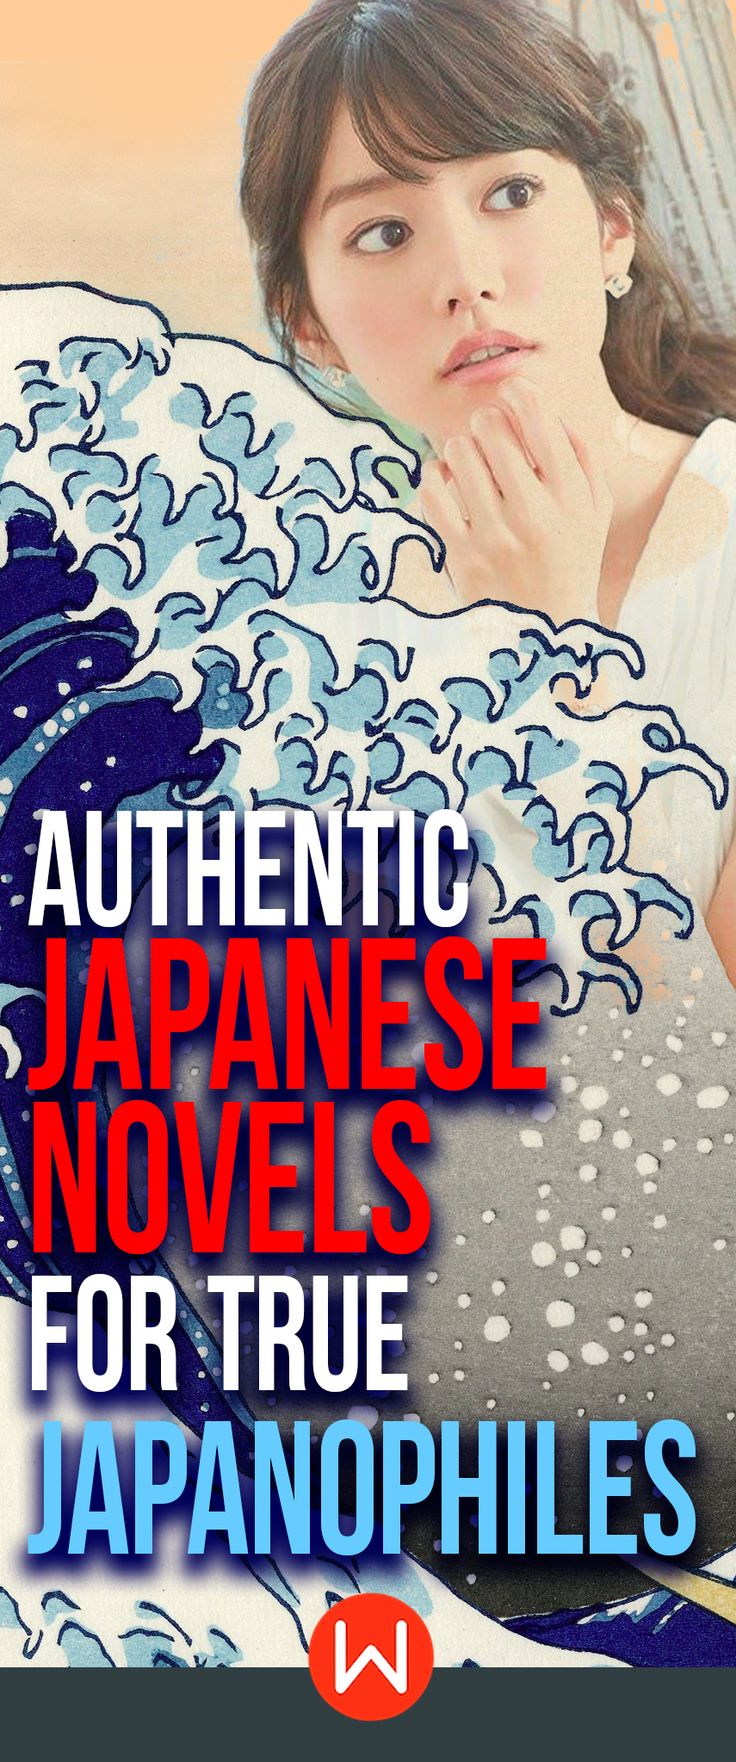 Only Japanophiles will get it! Japanese Novels inspiration, Japanese literature for true Janophiles. Are you a Janophile? Here's a Janophile book list for you! Japanese books, Japanese literature, Japanese authors, Novels from Japan, Mirei Kiritani.